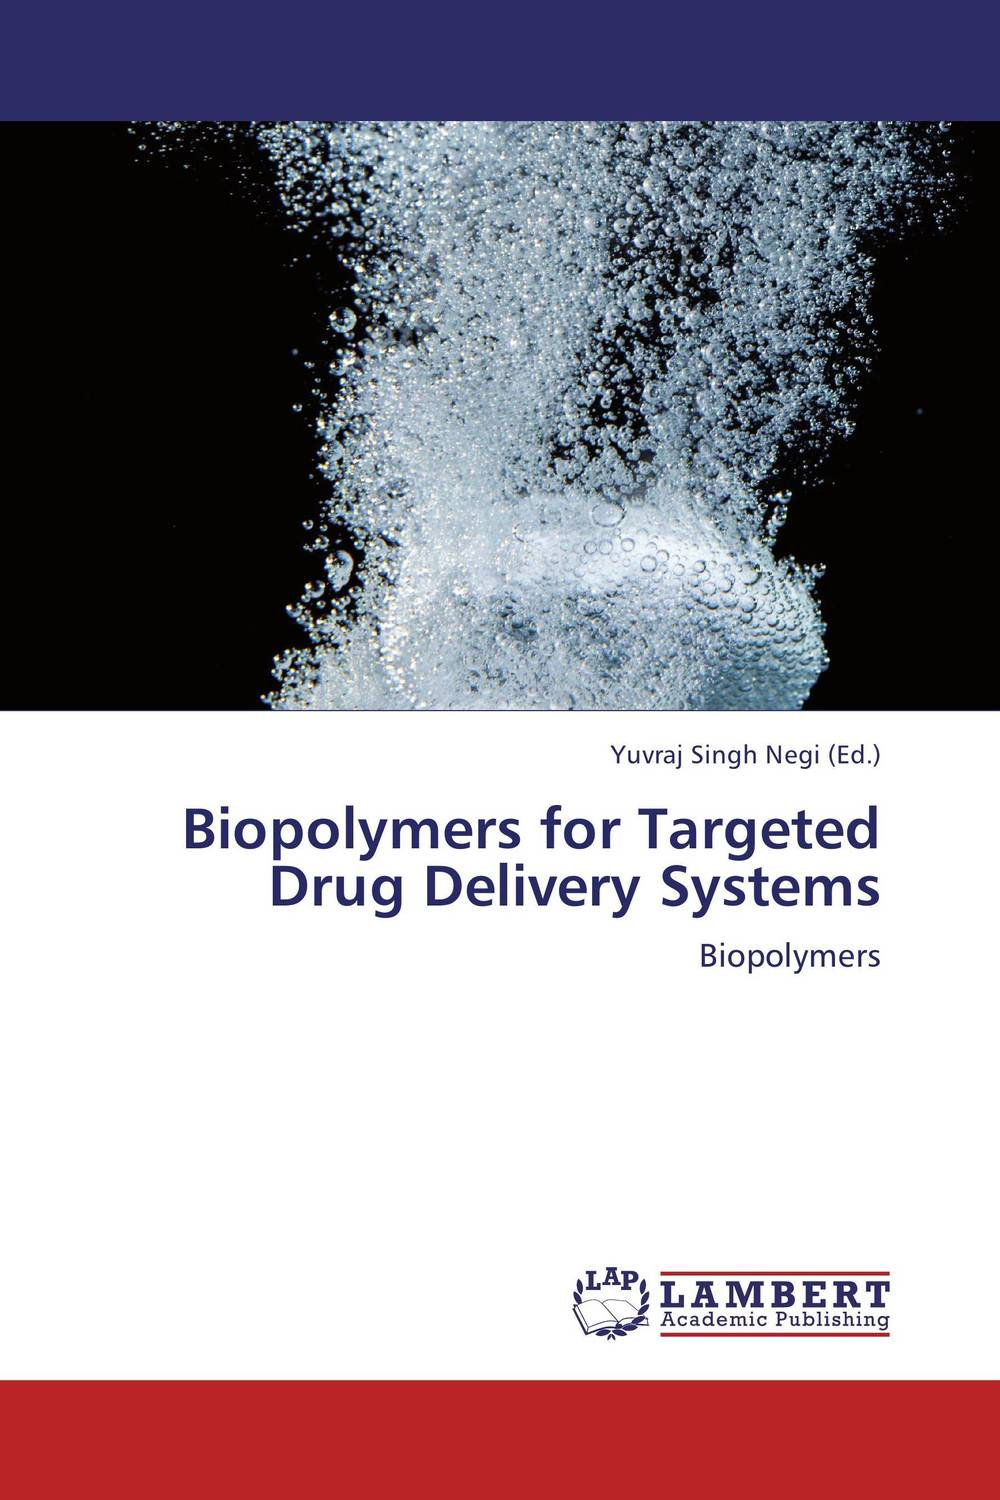 Biopolymers for Targeted Drug Delivery Systems yuvraj singh negi biopolymers for targeted drug delivery systems